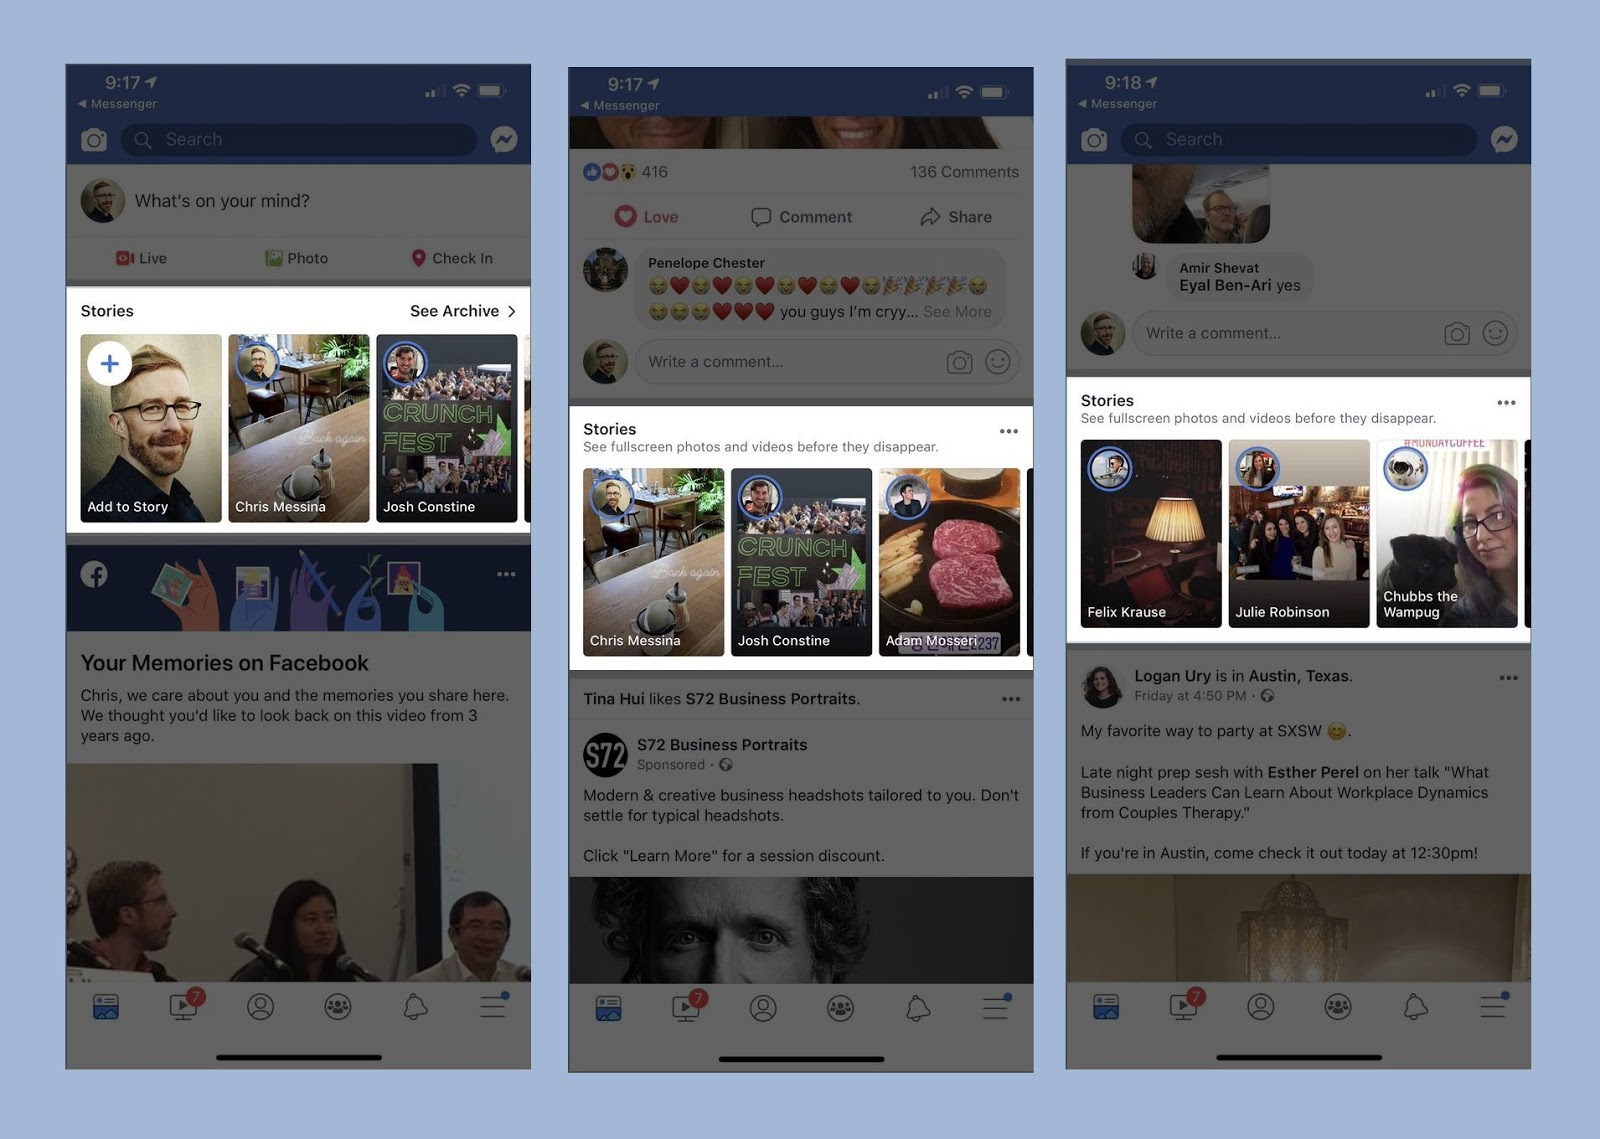 Facebook is trying hard to push Stories in users feed